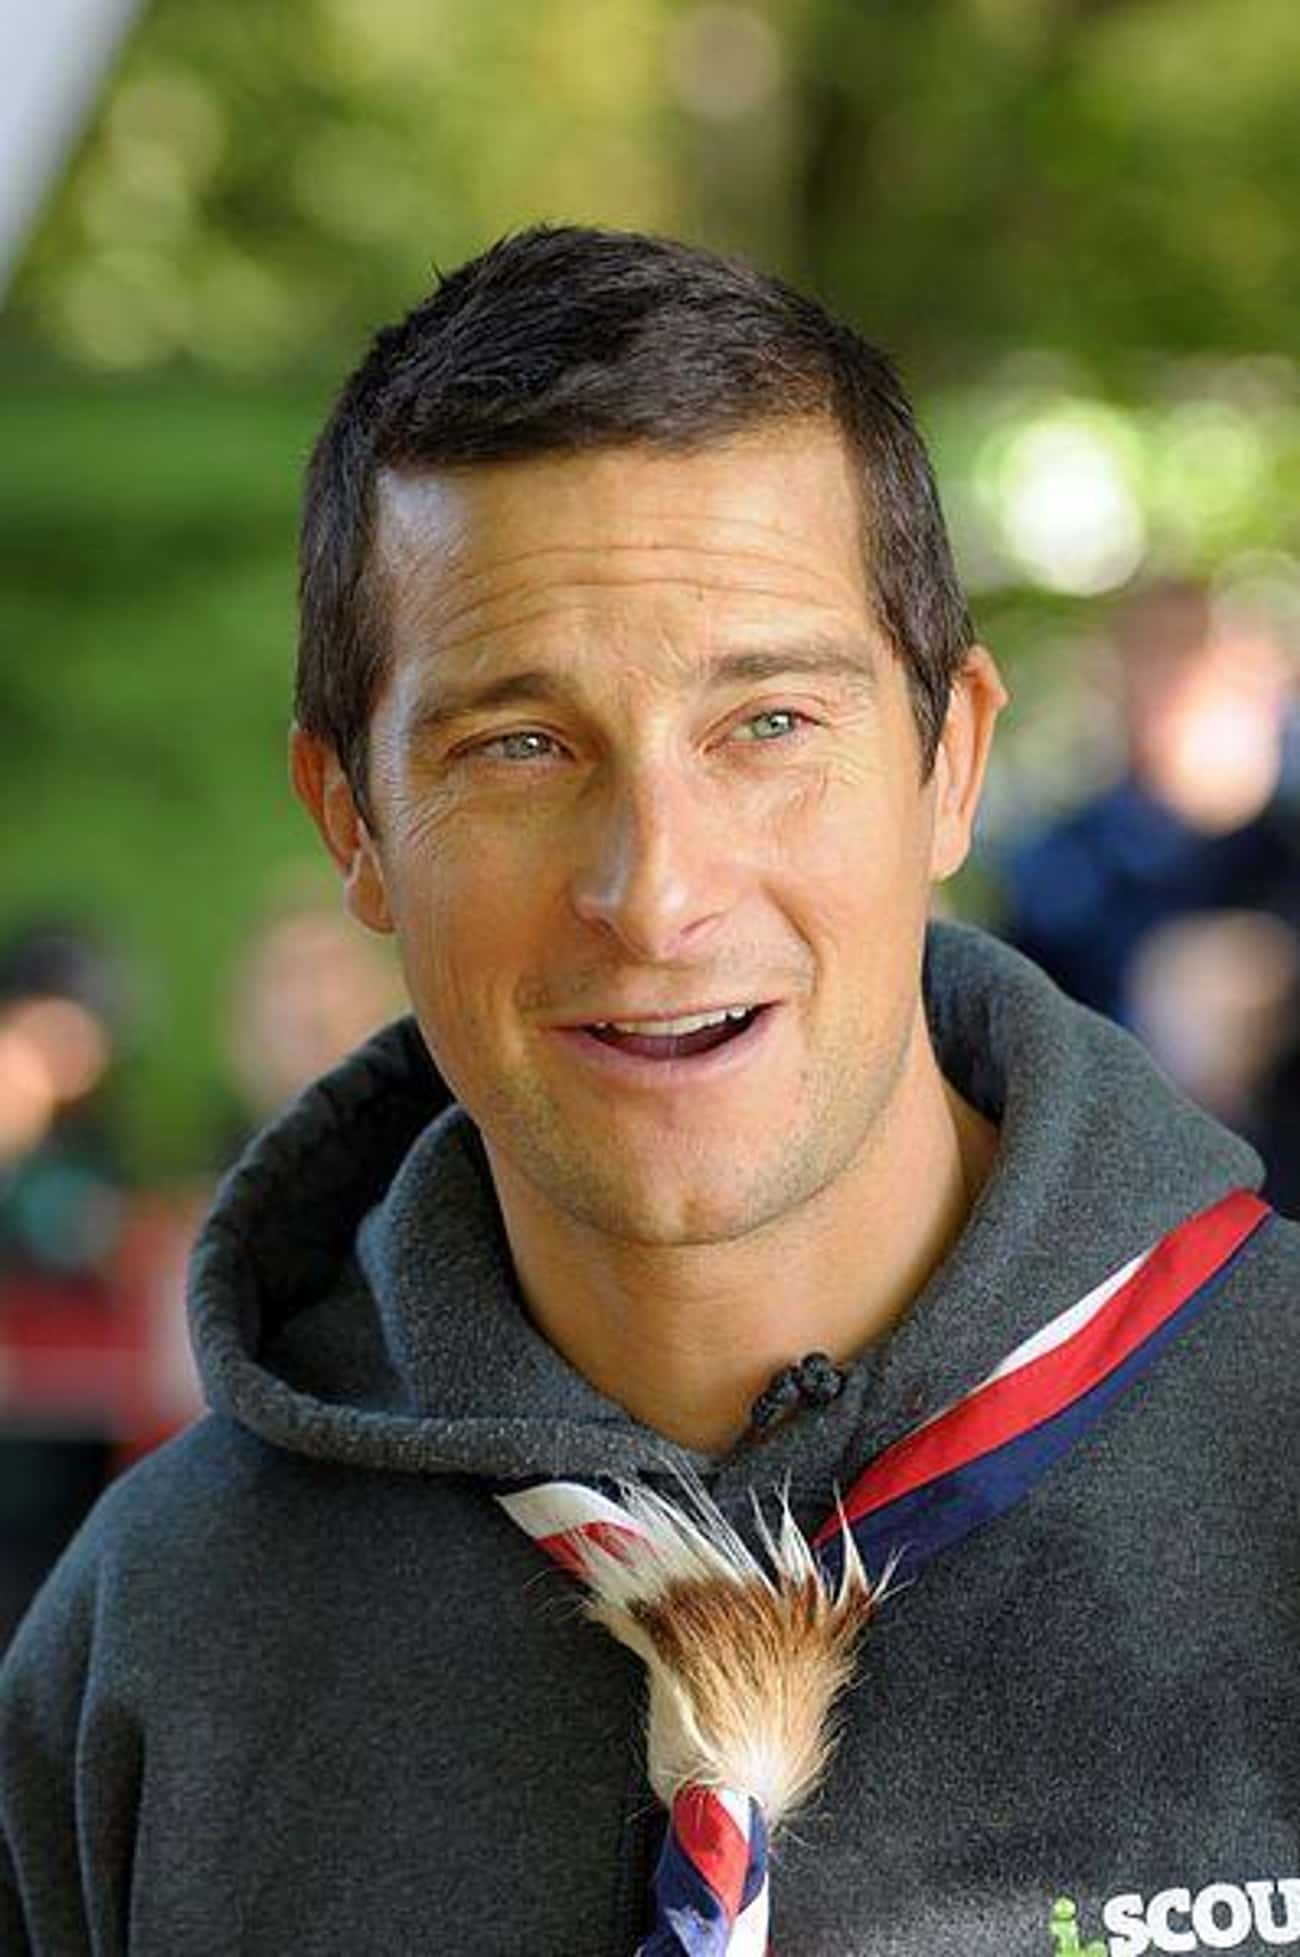 Bear Grylls is listed (or ranked) 1 on the list List of Famous Adventurers